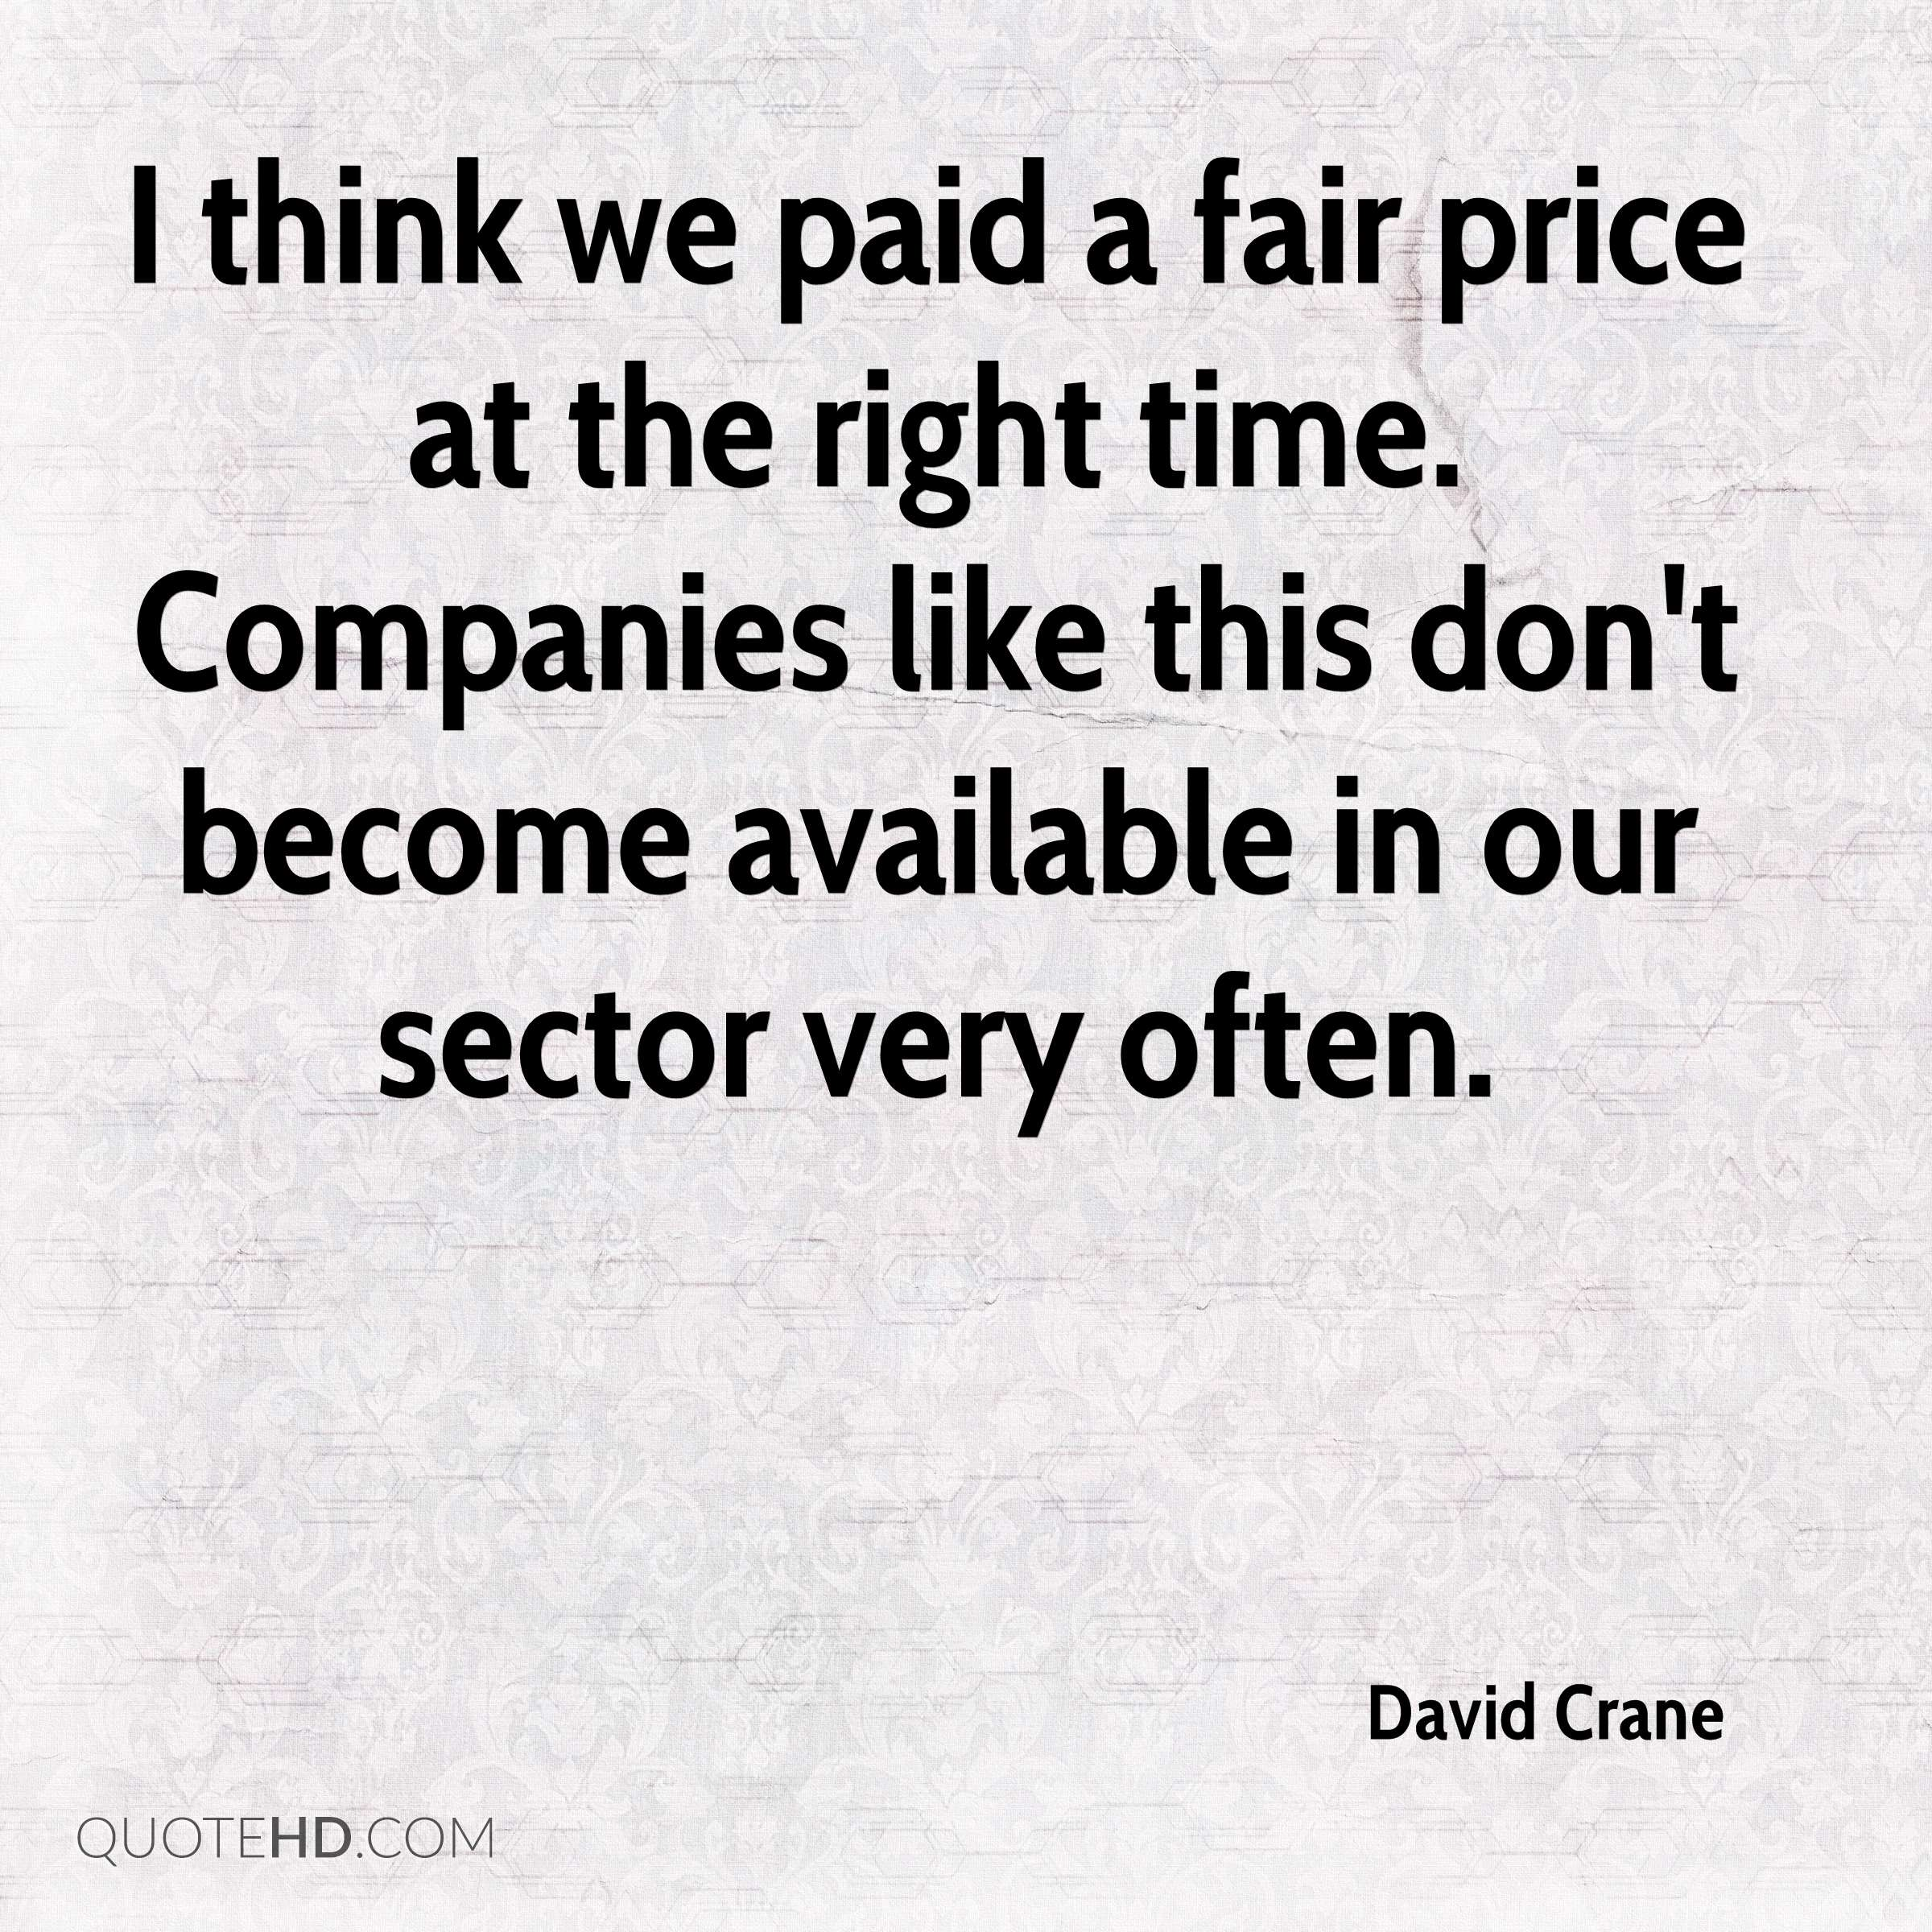 I think we paid a fair price at the right time. Companies like this don't become available in our sector very often.